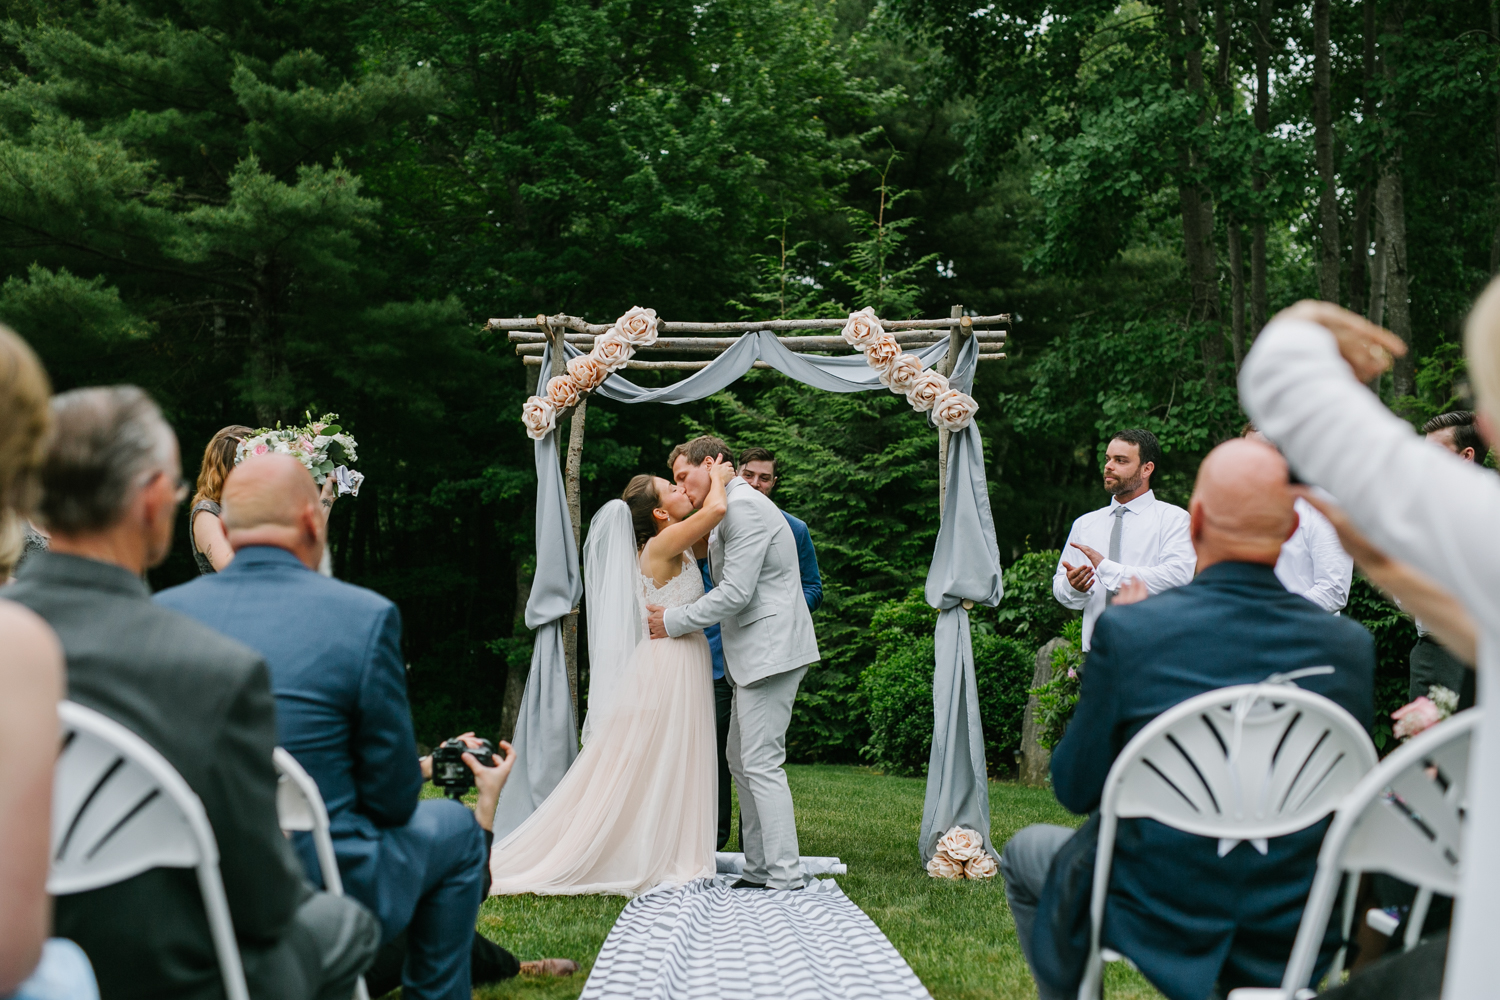 Emily Tebbetts Photography - back yard wedding gif atkinson nh confetti recessional bride and groom pizza truck -9.jpg